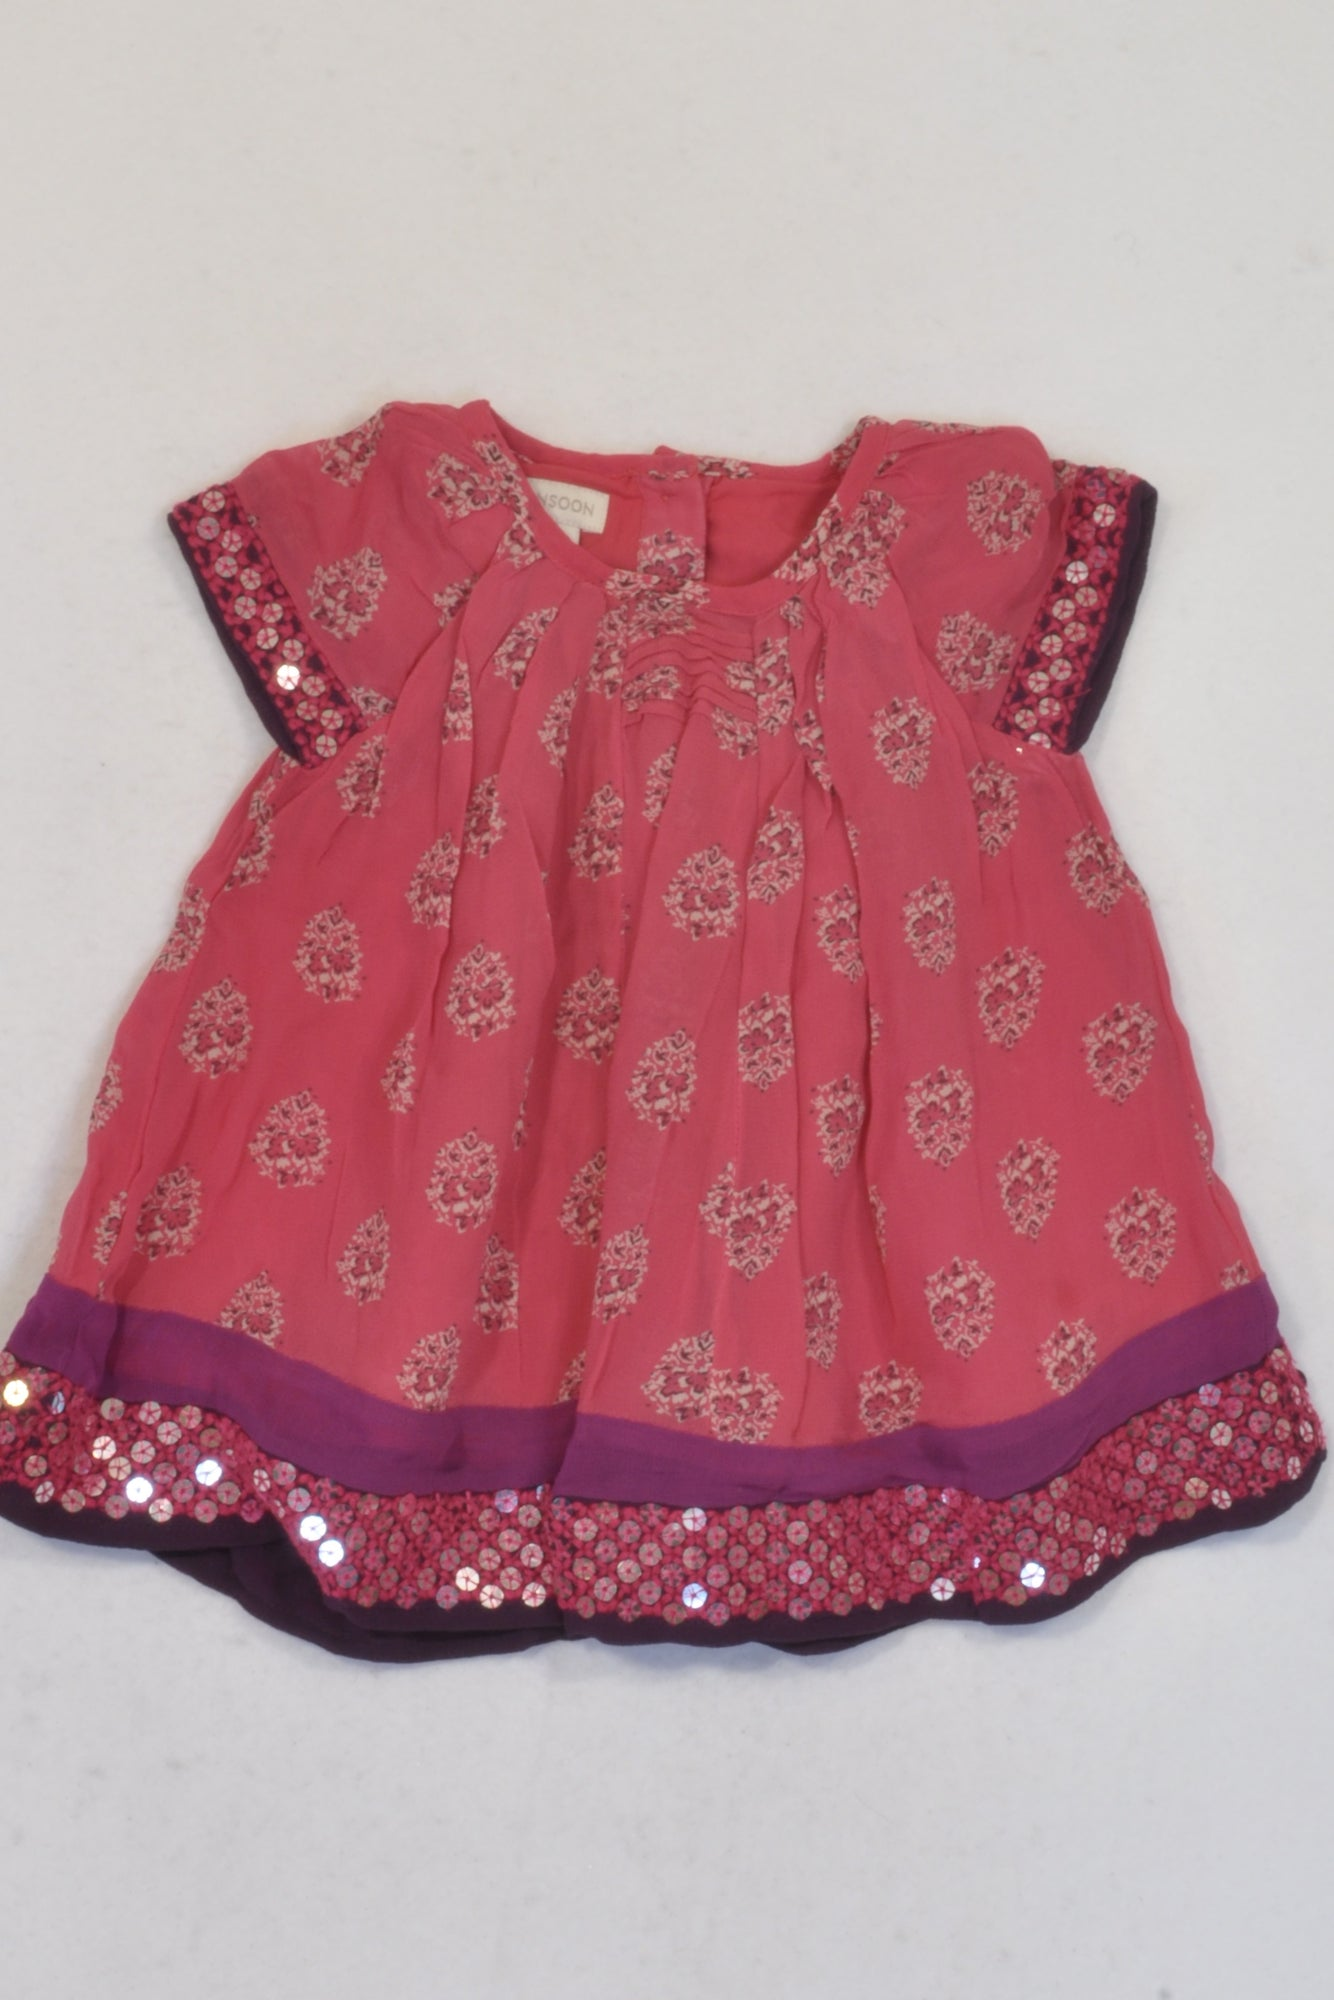 Monsoon Pink Floral Chiffon Dress Girls 0-3 months